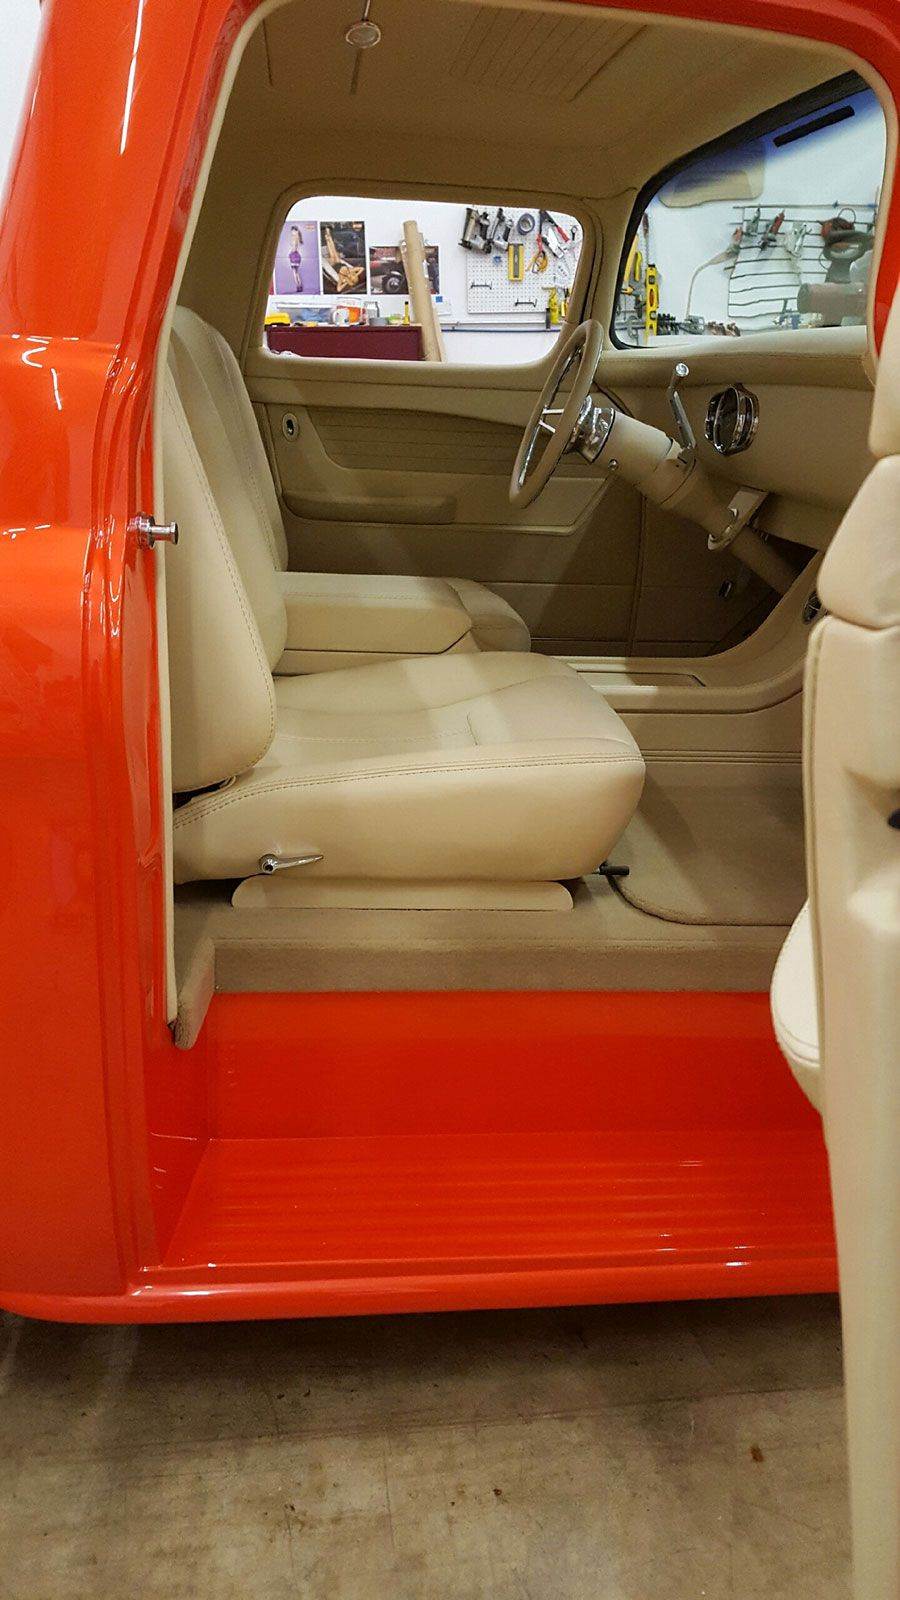 1977 chevy c10 stepside car interior design - 1955 Chevy Truck Built By East Coast Muscle Cars Bux Customs Hot Rod Interiors